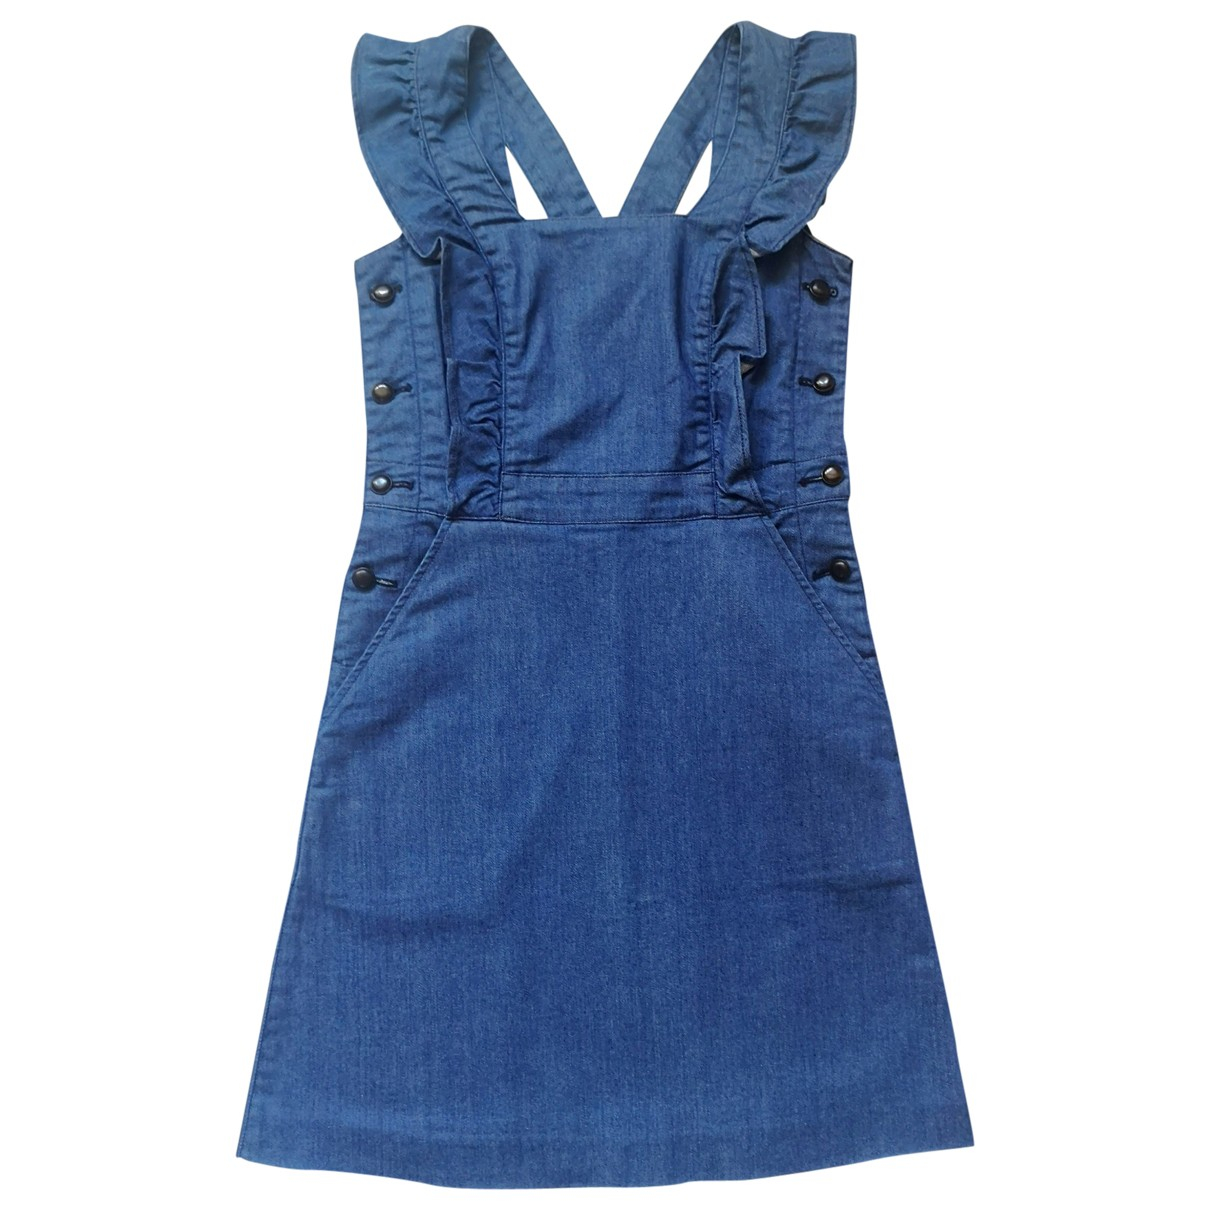 Cacharel \N Blue Cotton dress for Women 36 FR